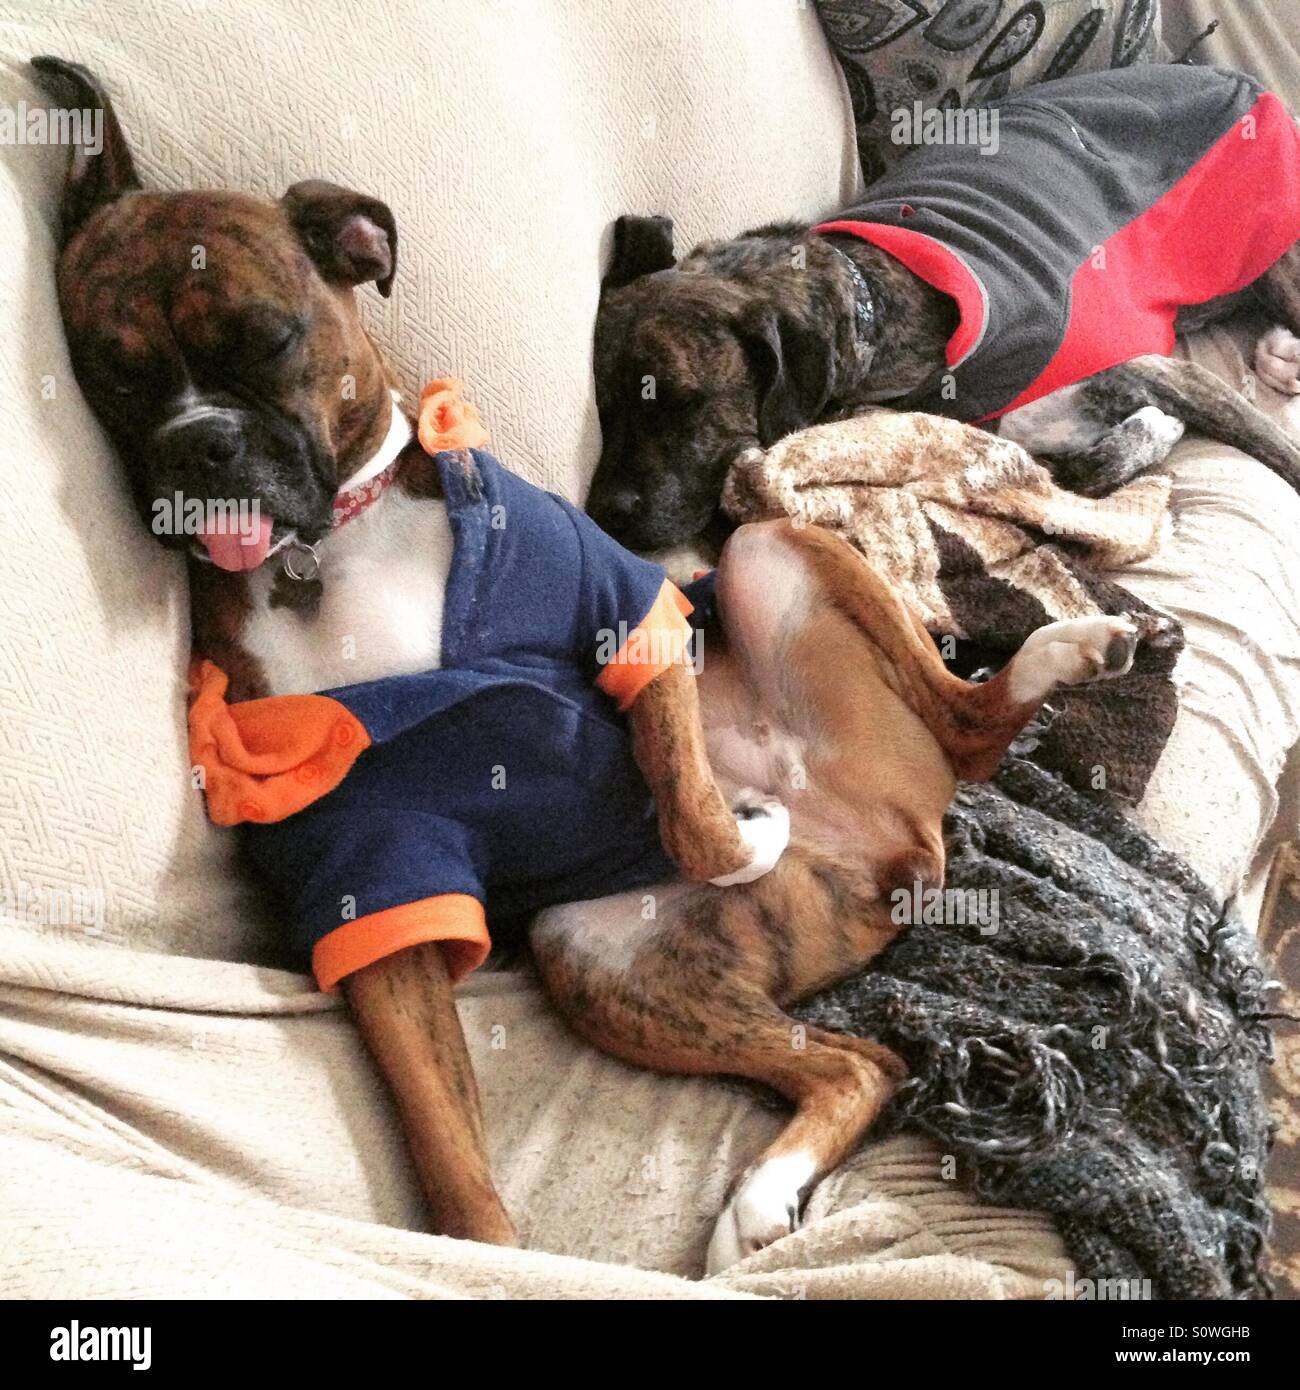 Funny dogs sleeping in jackets - Stock Image